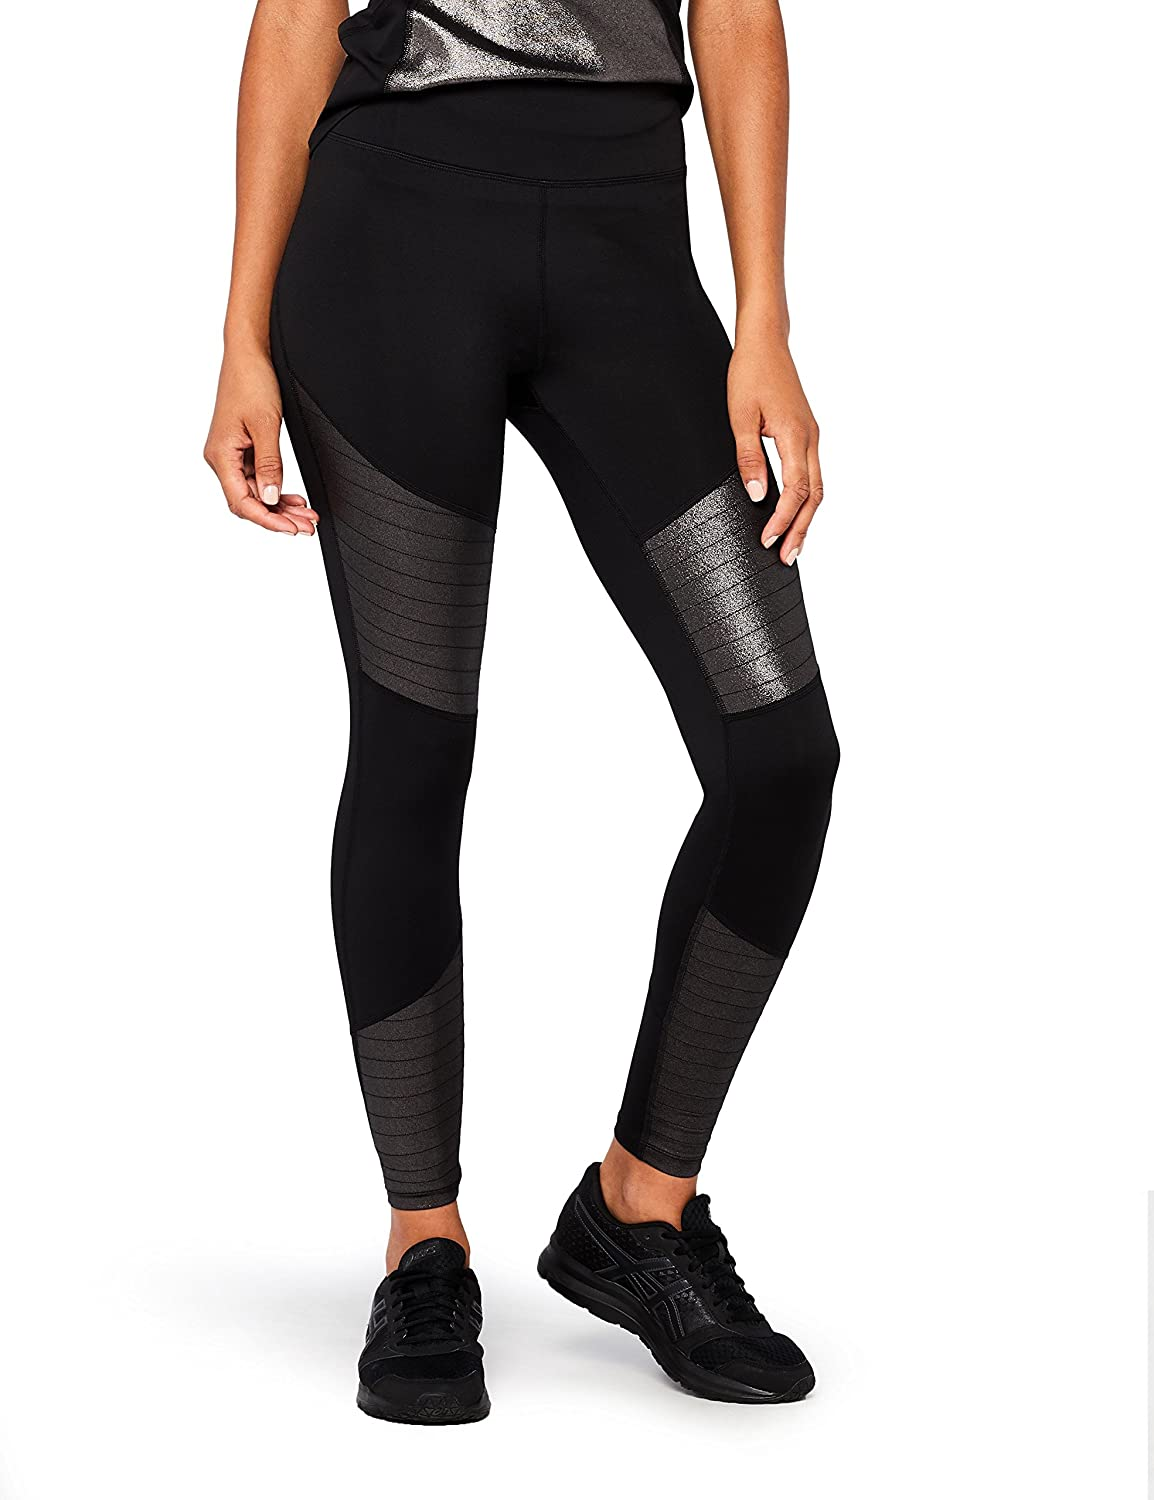 AURIQUE Women's High Waisted High Shine Sports Leggings AMA18Q2_14